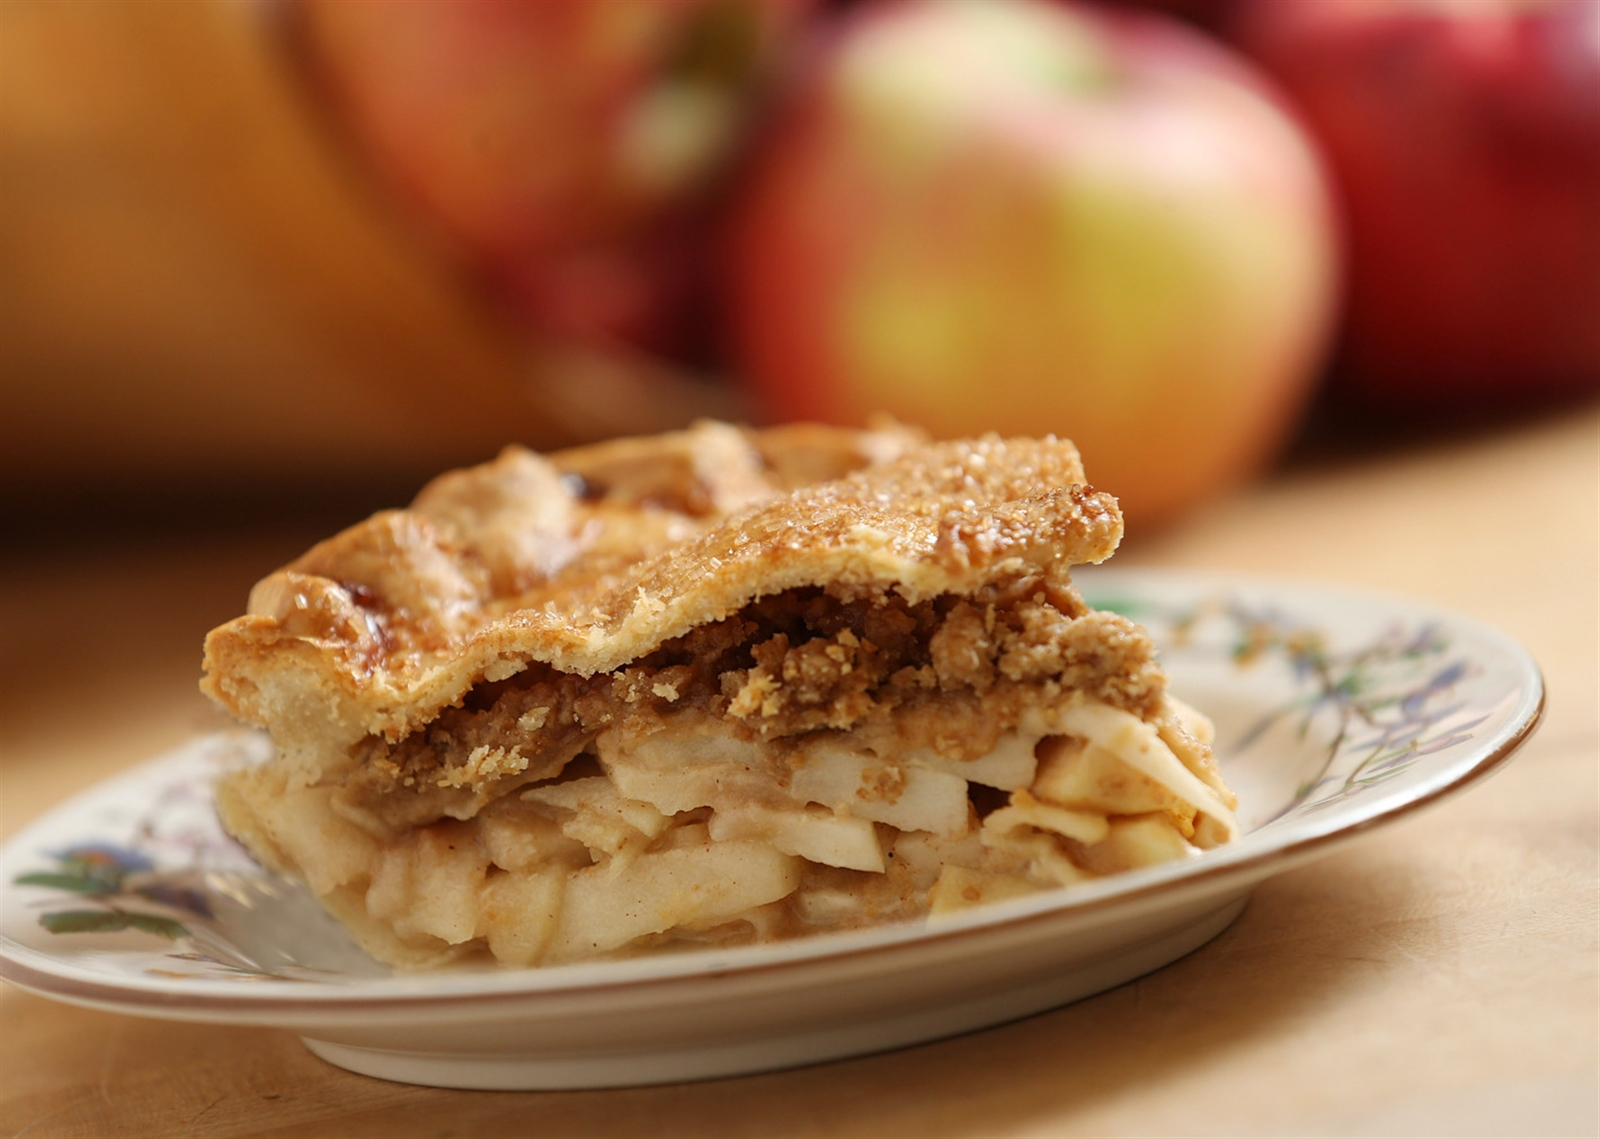 They include an apple pie with streusel topping under the top crust.